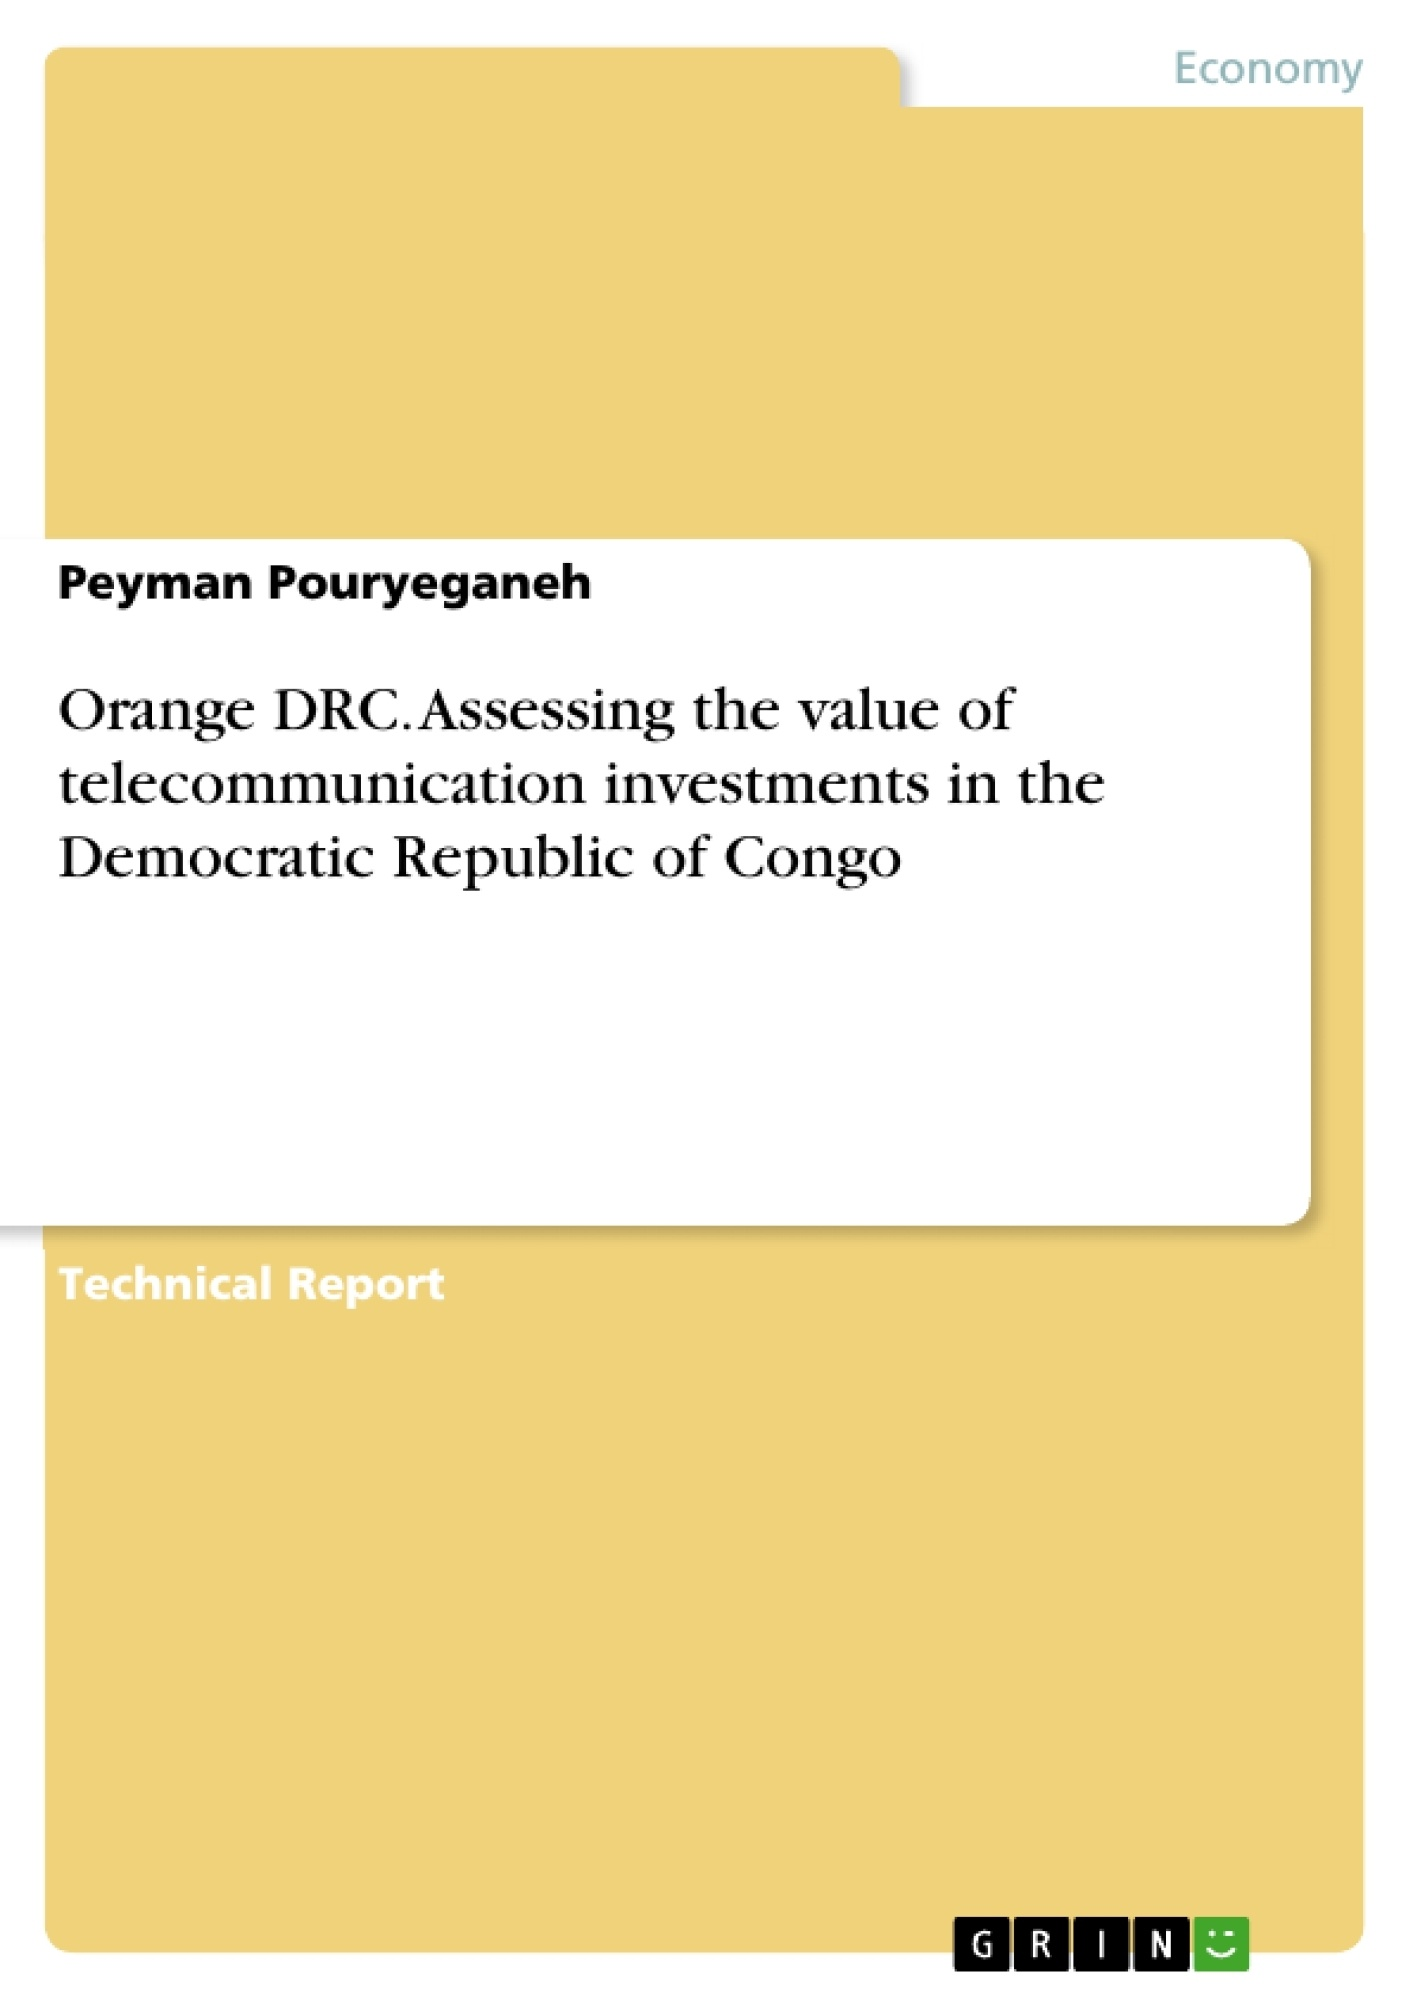 Ethical issues in business communication-essay